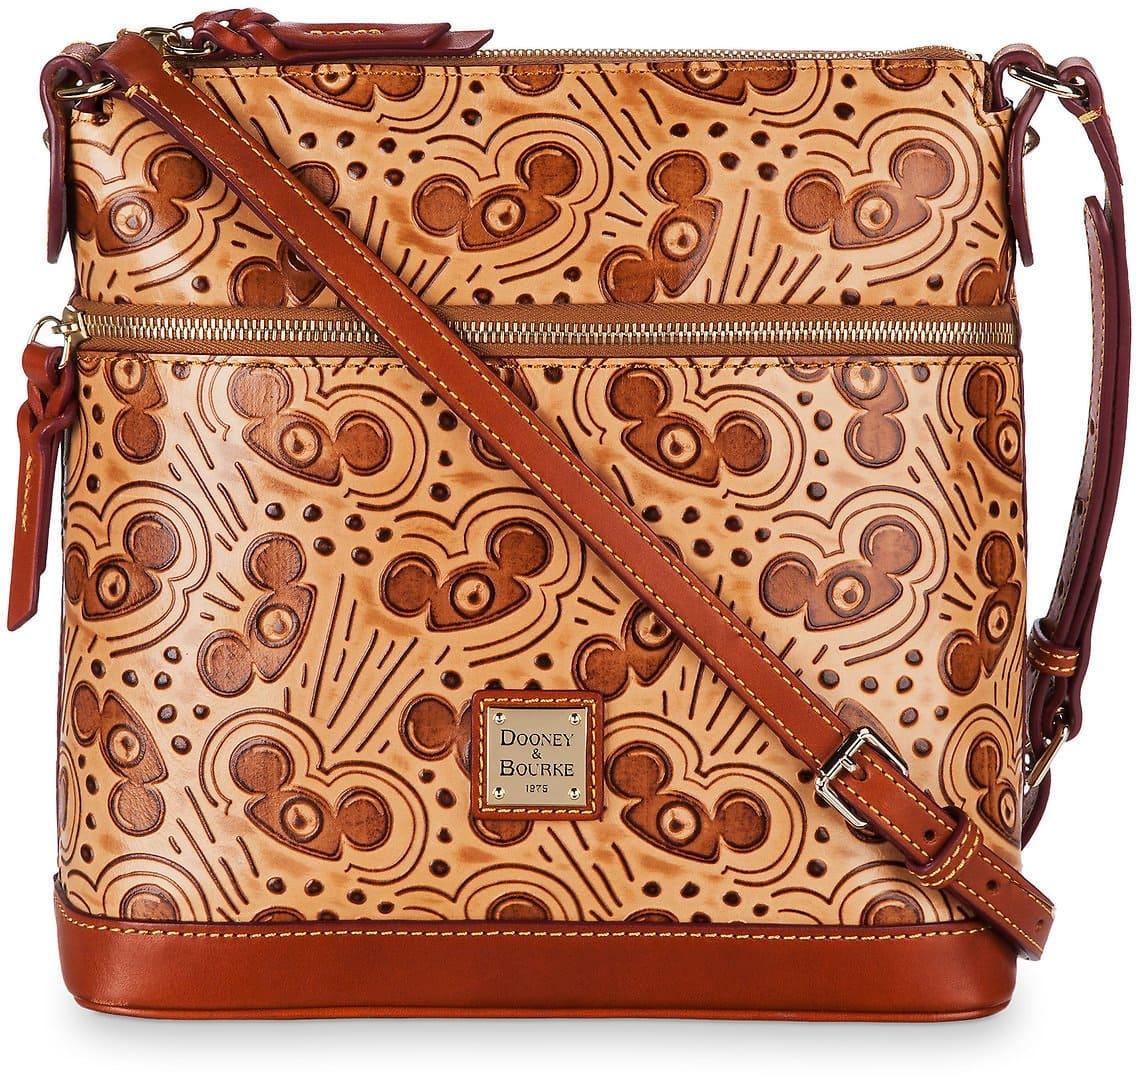 Mouseketeer Ear Hat Natural Leather Letter Carrier Bag By Dooney & Bourke $198.40 + fs